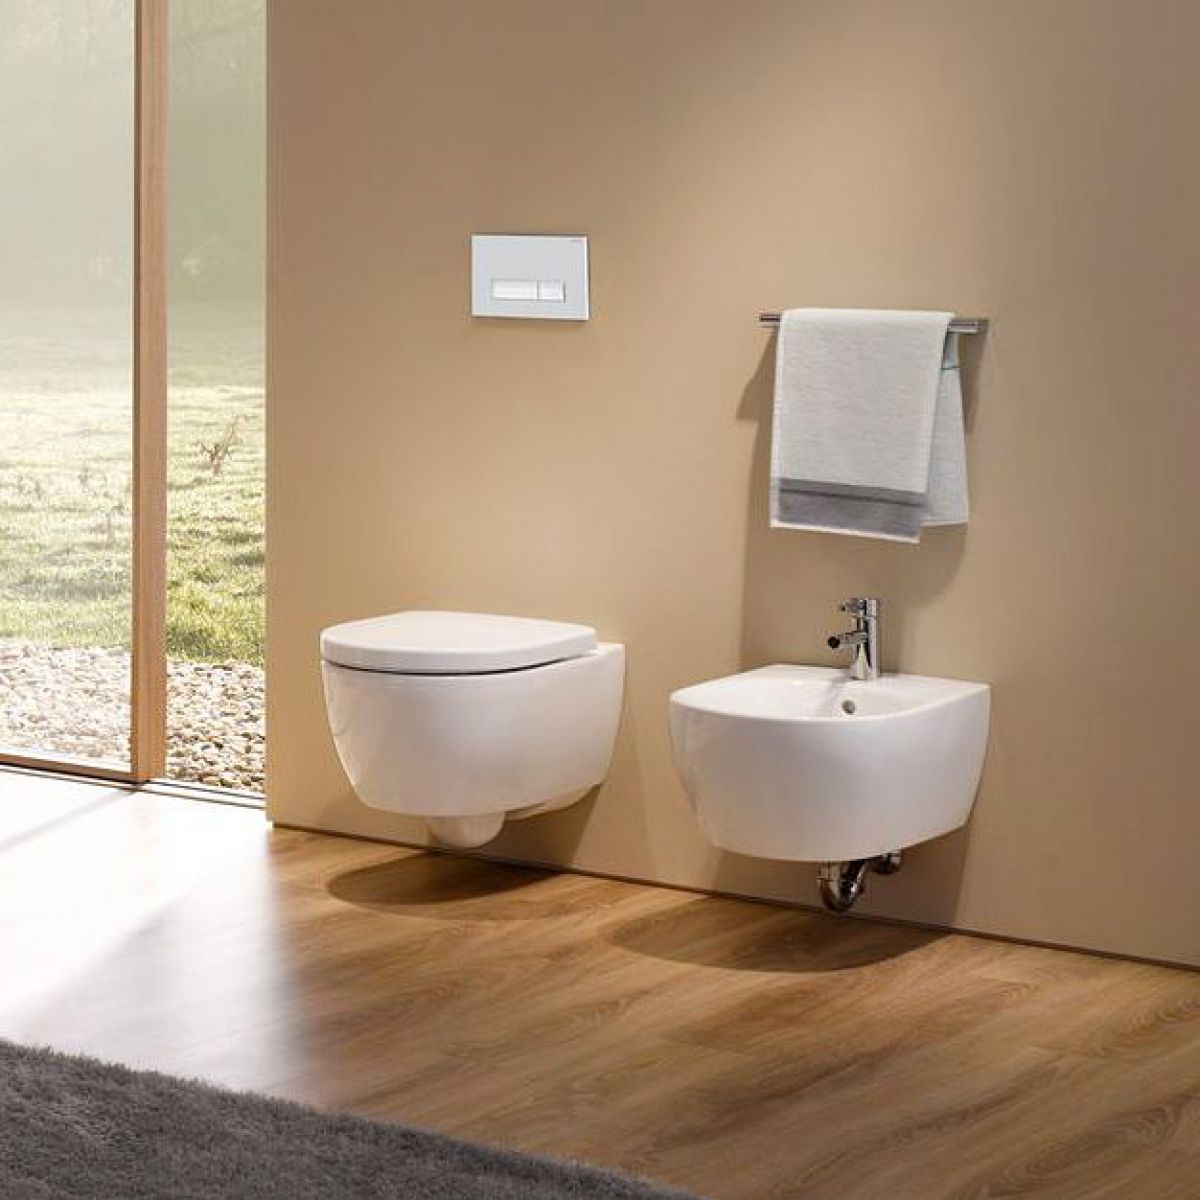 geberit icon short projection rimfree wall hung toilet. Black Bedroom Furniture Sets. Home Design Ideas